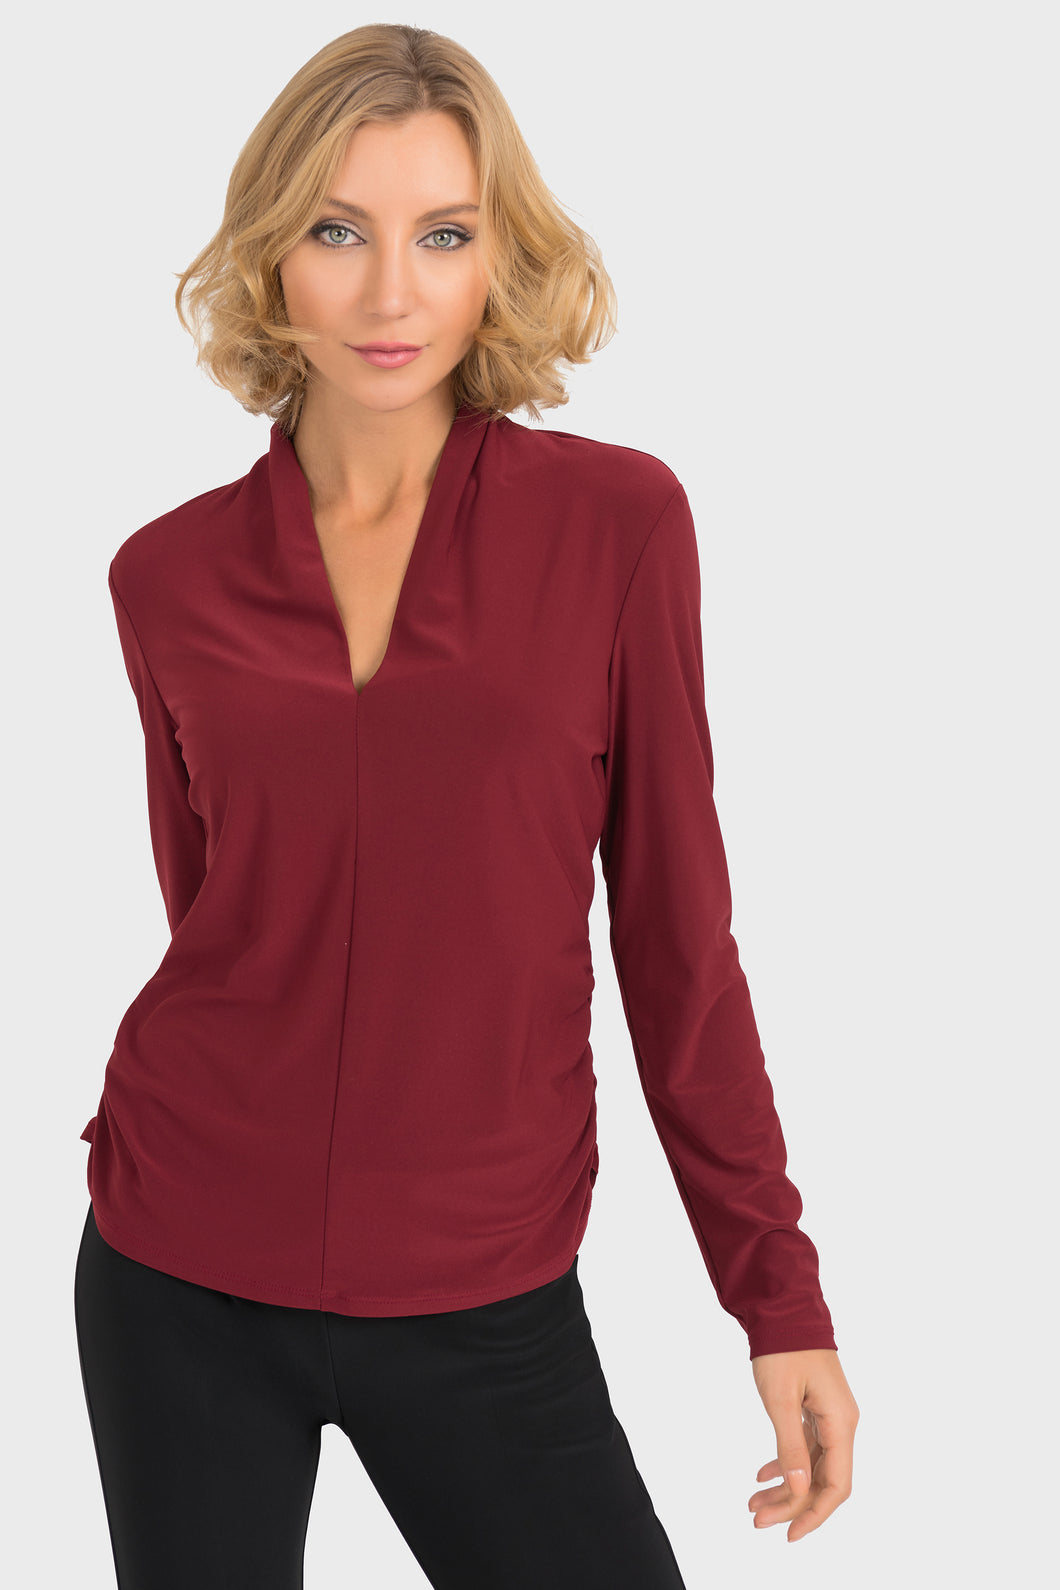 Long Sleeve V-Neck top with Rusched Sides